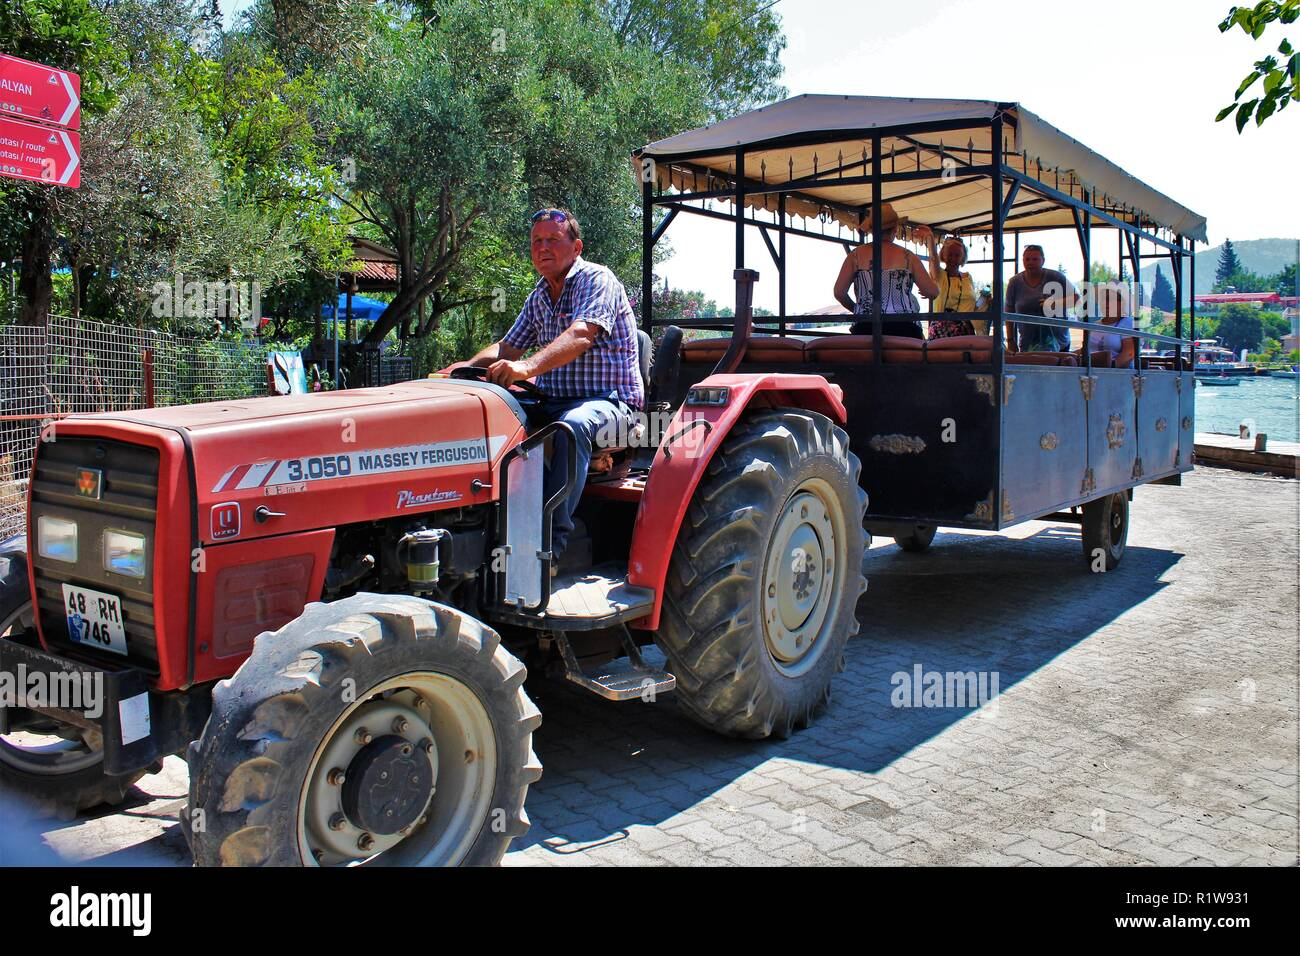 Dalyan, Turkey - July 9th 2018: Tourists embark the tractor shuttle from Dalyan town up to the ancient ruins of Kaunos heritage site. - Stock Image